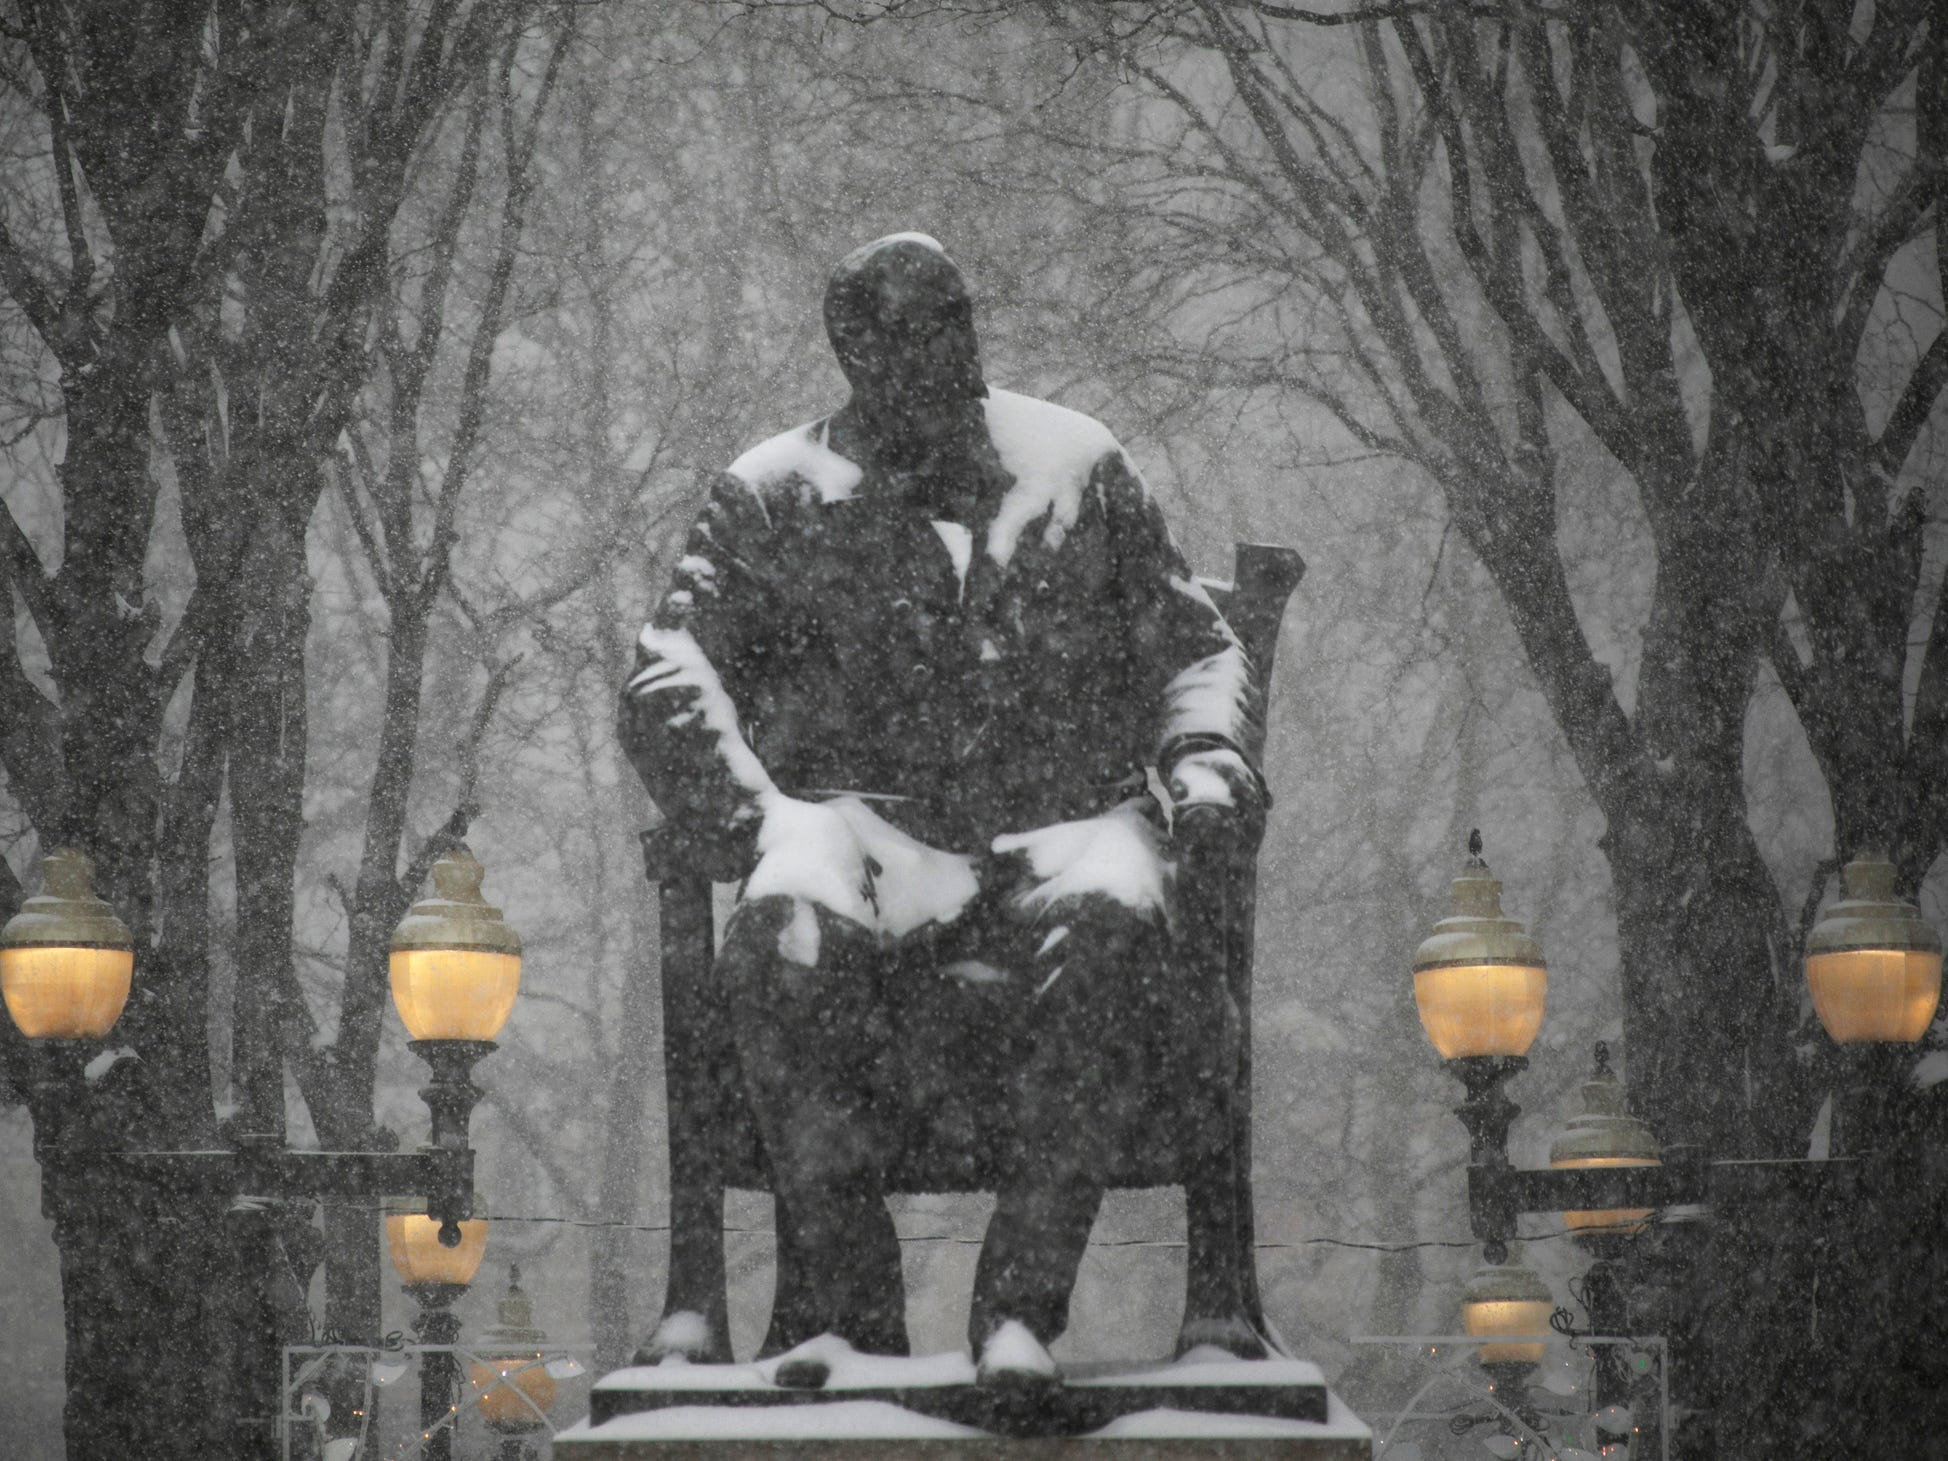 The Hazen S. Pingree statue, located at Grand Circus Park in Detroit, sits quietly as heavy snows hit metro Detroit on Monday, Jan. 28, 2019.